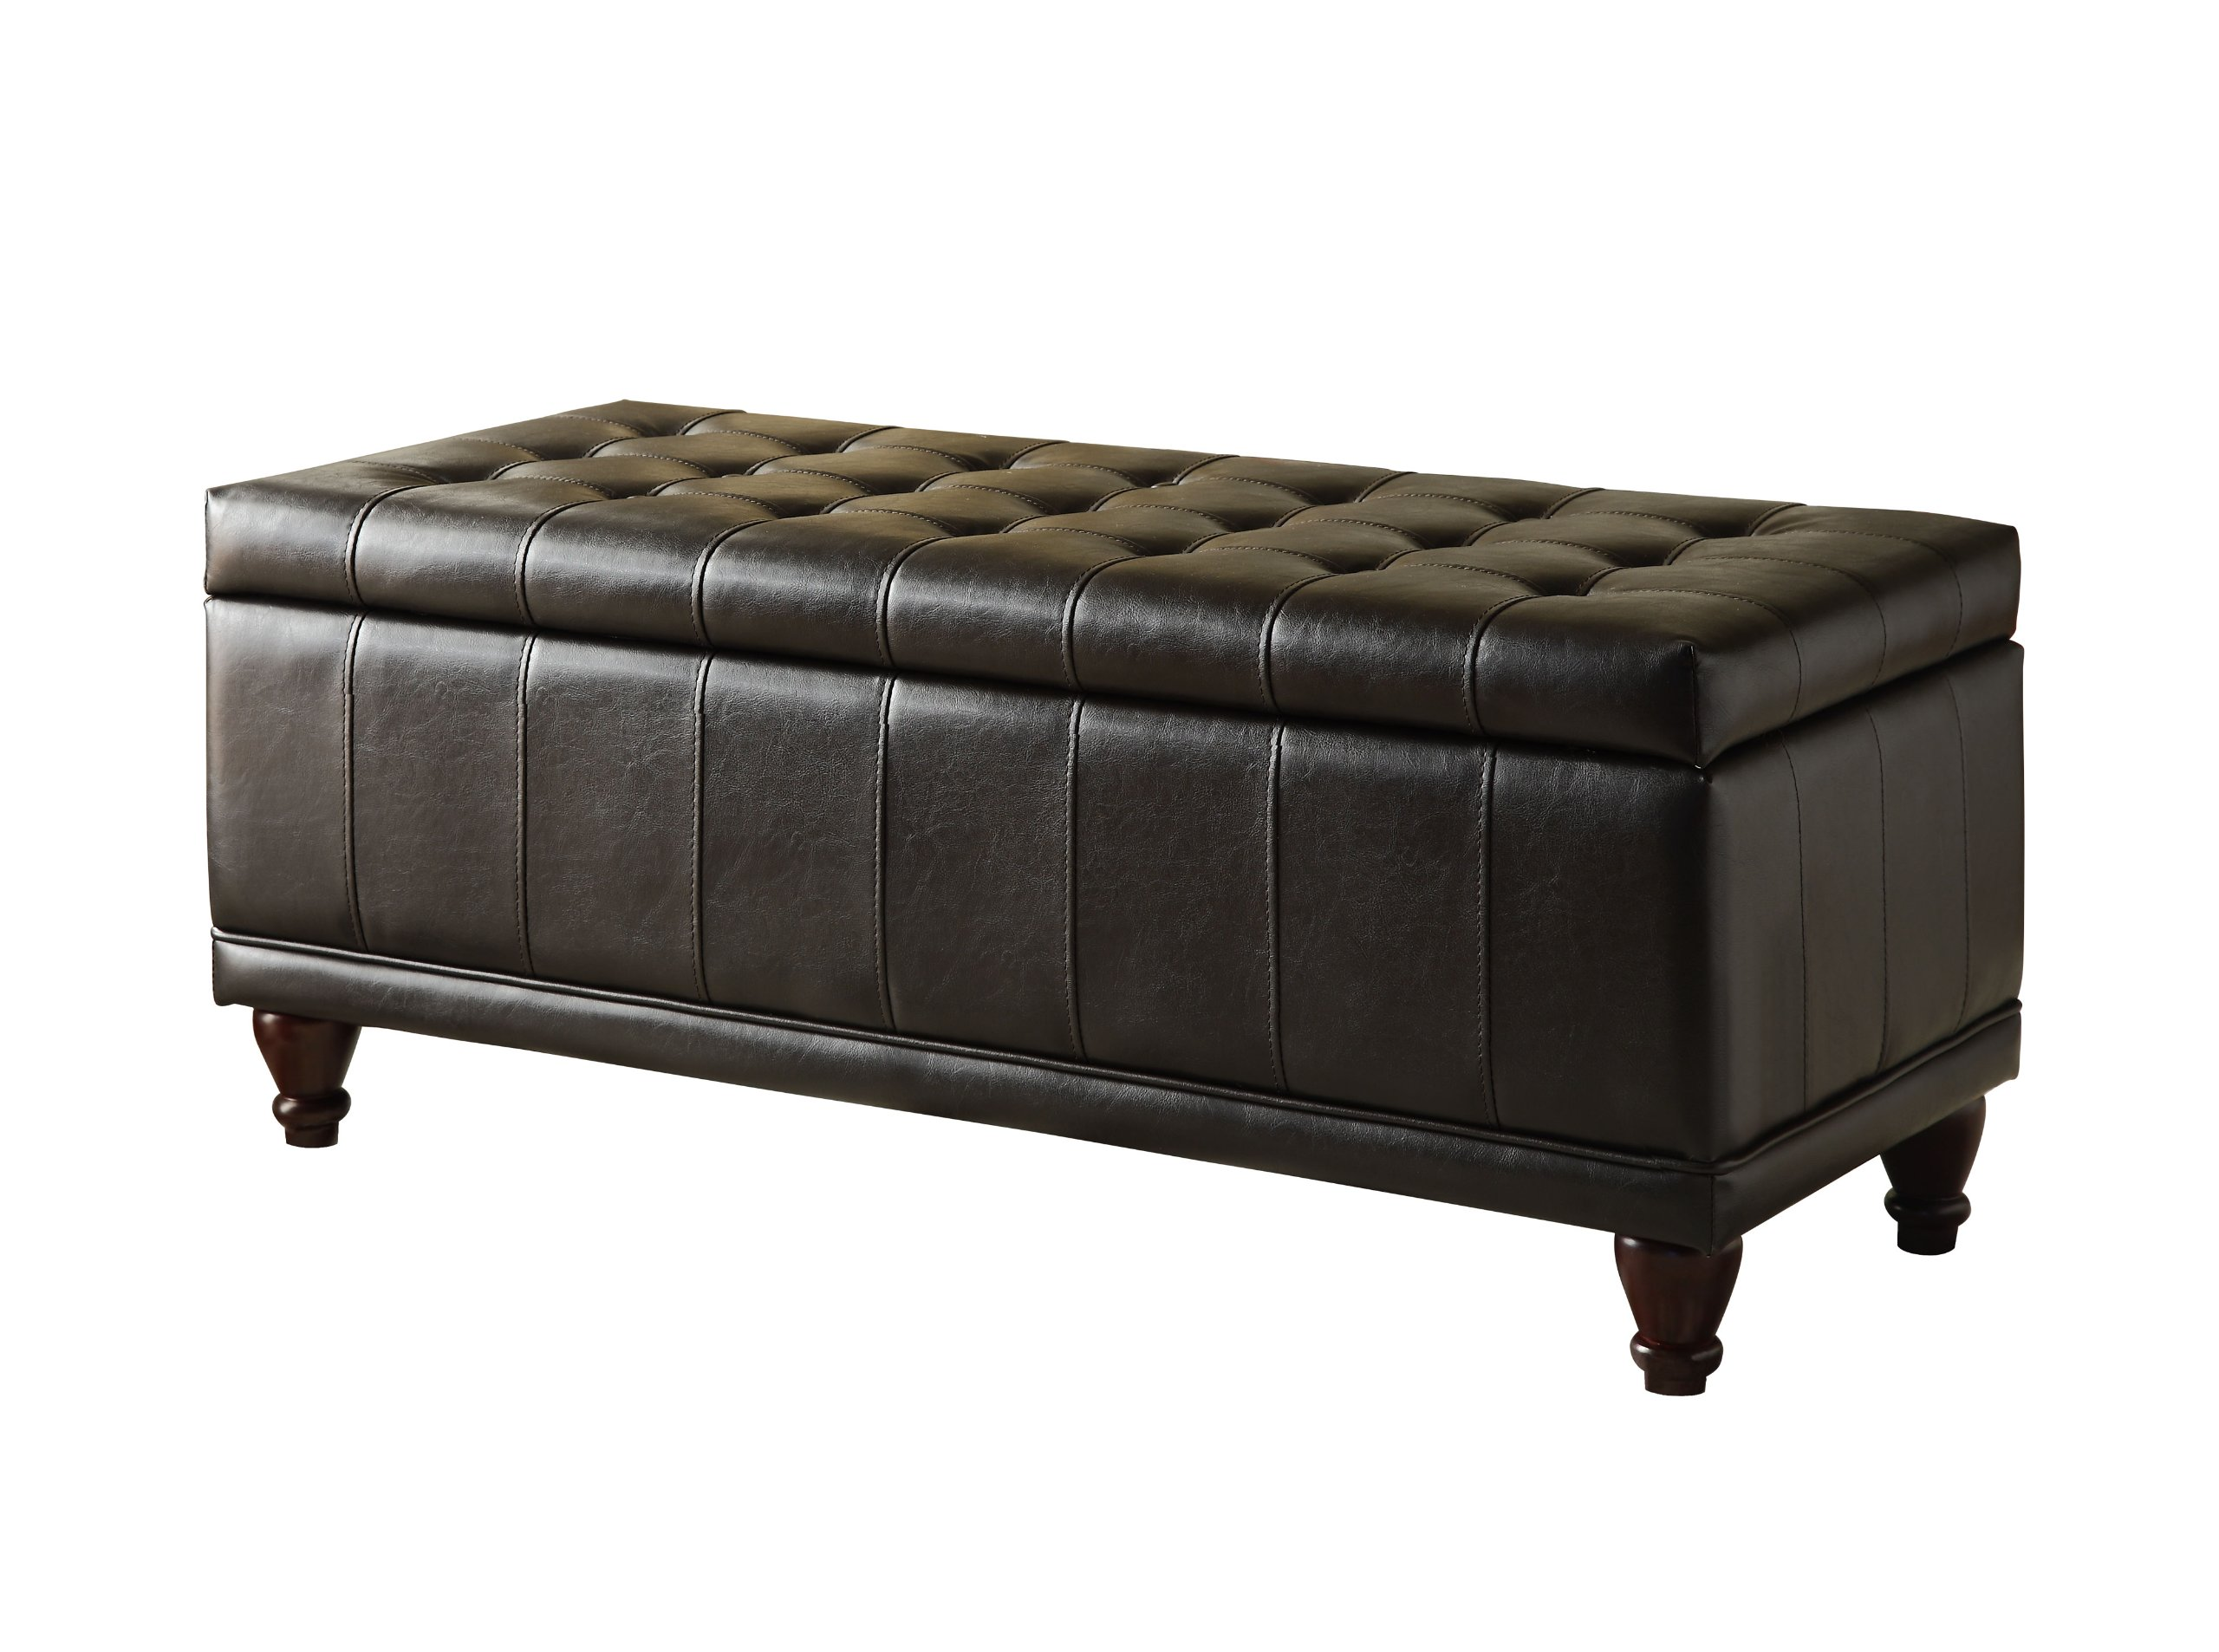 Homelegance 4730PU Lift Top Storage Bench with Tufted Accents, Dark Brown Faux Leather by Homelegance